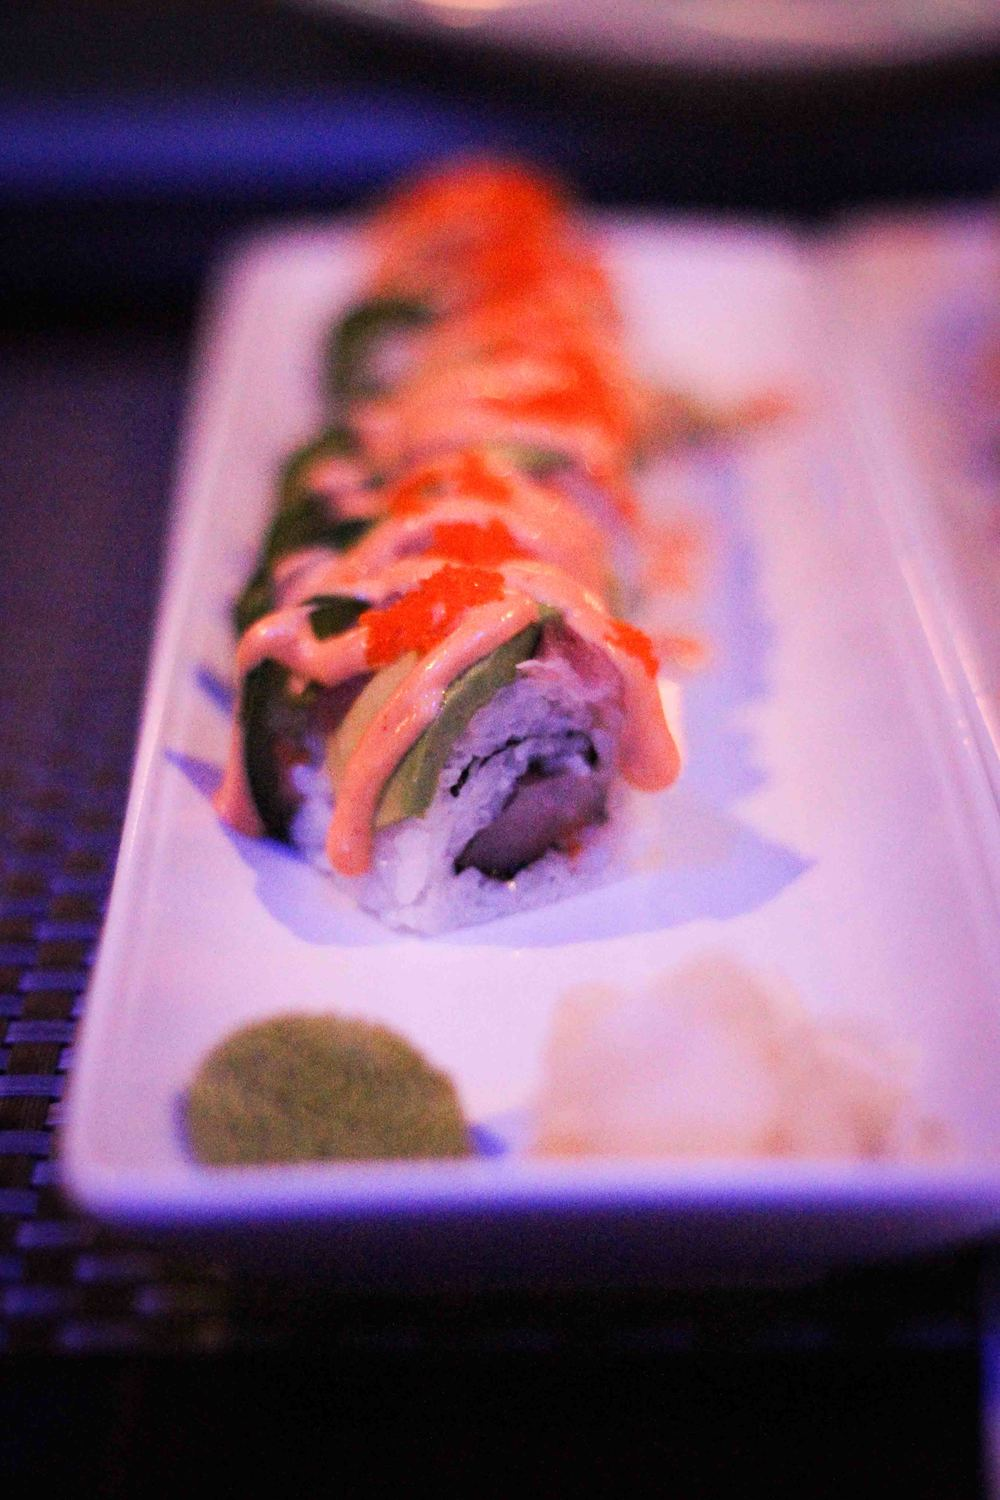 The Solar Eclipse Roll was filled with spicy yellowtail and topped with yellowtail, avocado, jalapeno, masago (roe) and spicy mayo